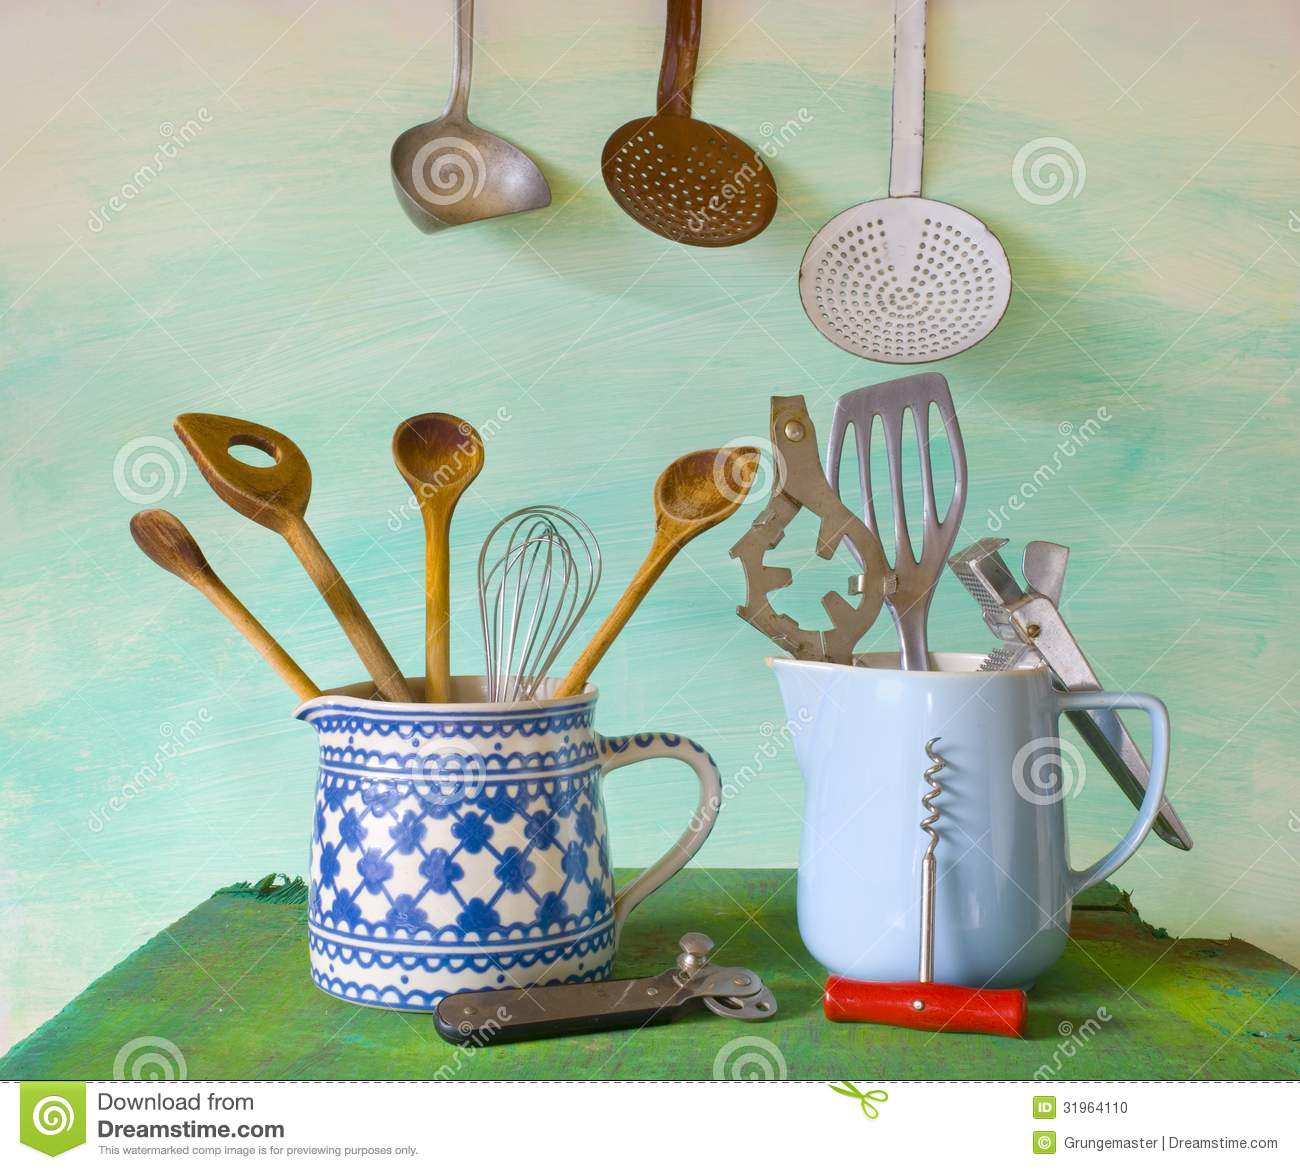 Kitchen Utensils Stock Photo - Image: 31964110